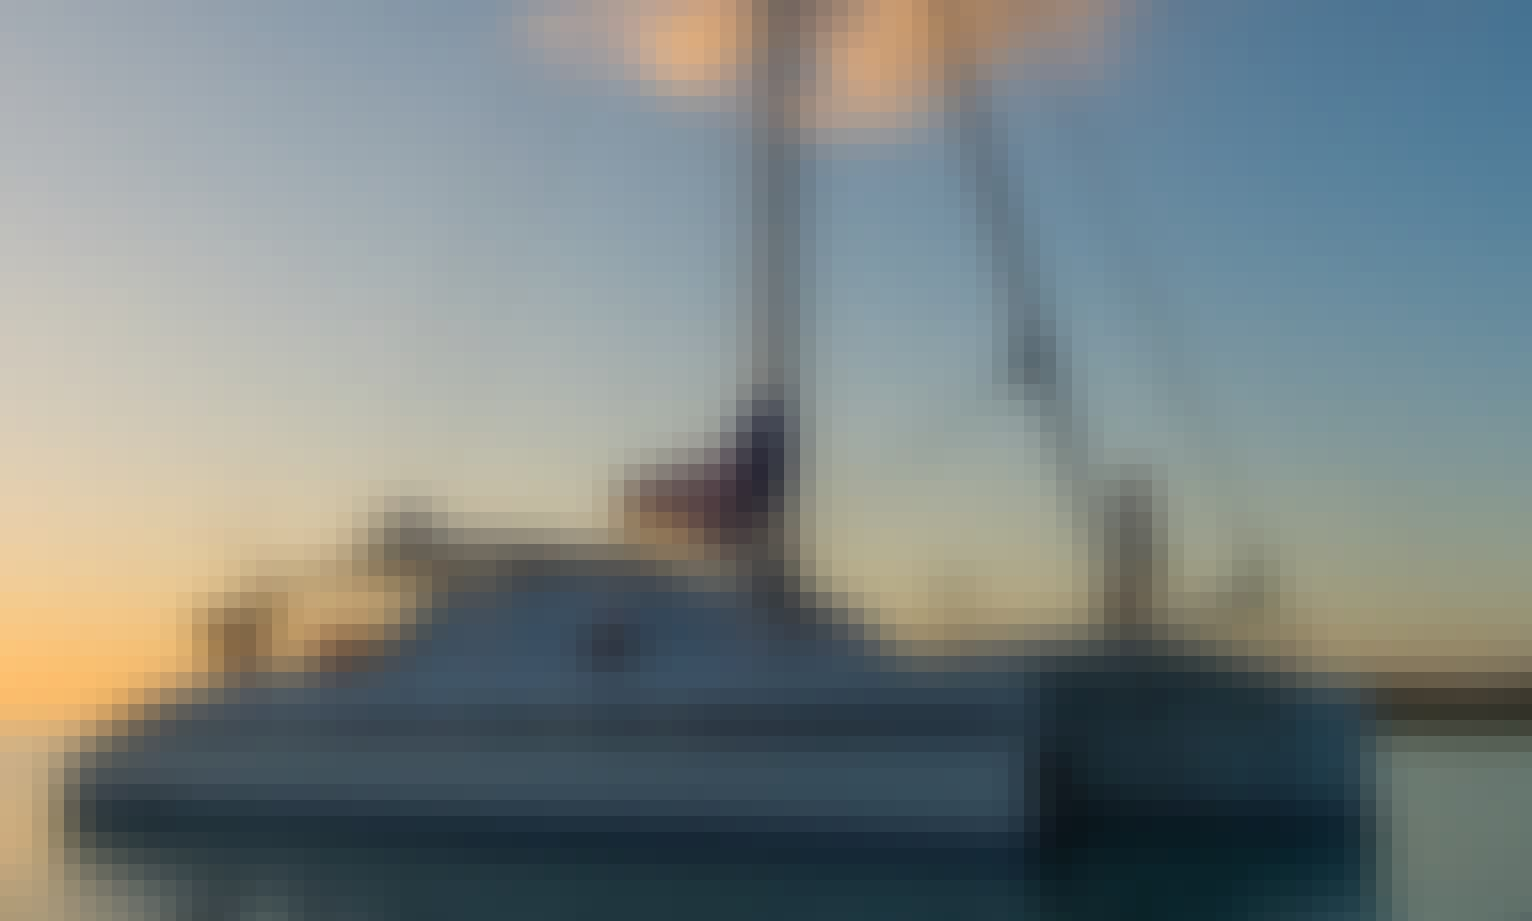 46ft Soubise Sailing Catamaran Boat Cruise in Newport, Rhode Island - Fully Booked will be available on September 3